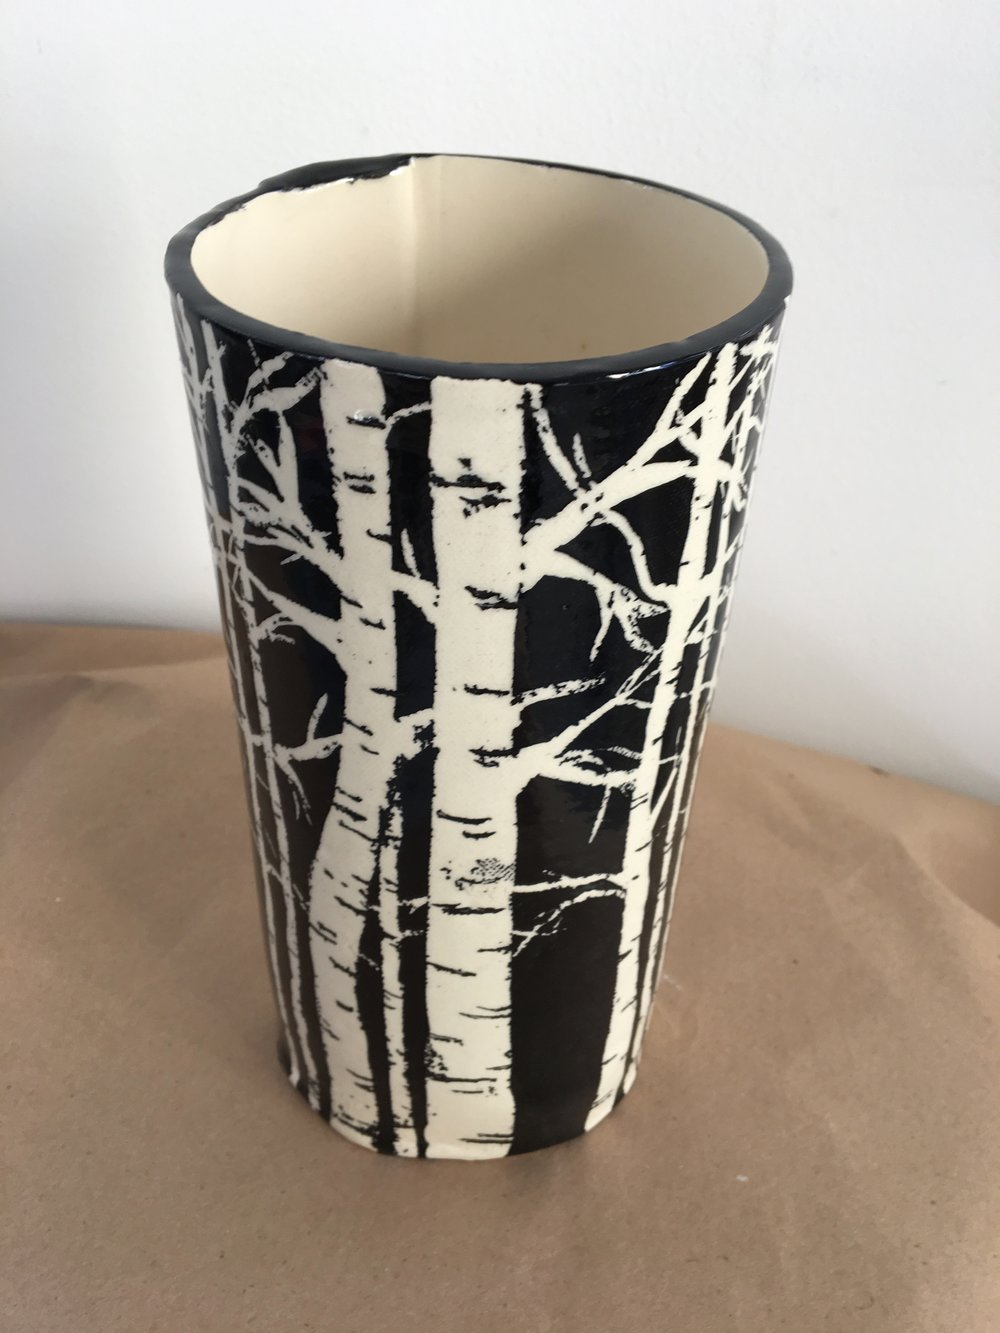 Wax Resist Vase by Cheryl Decker